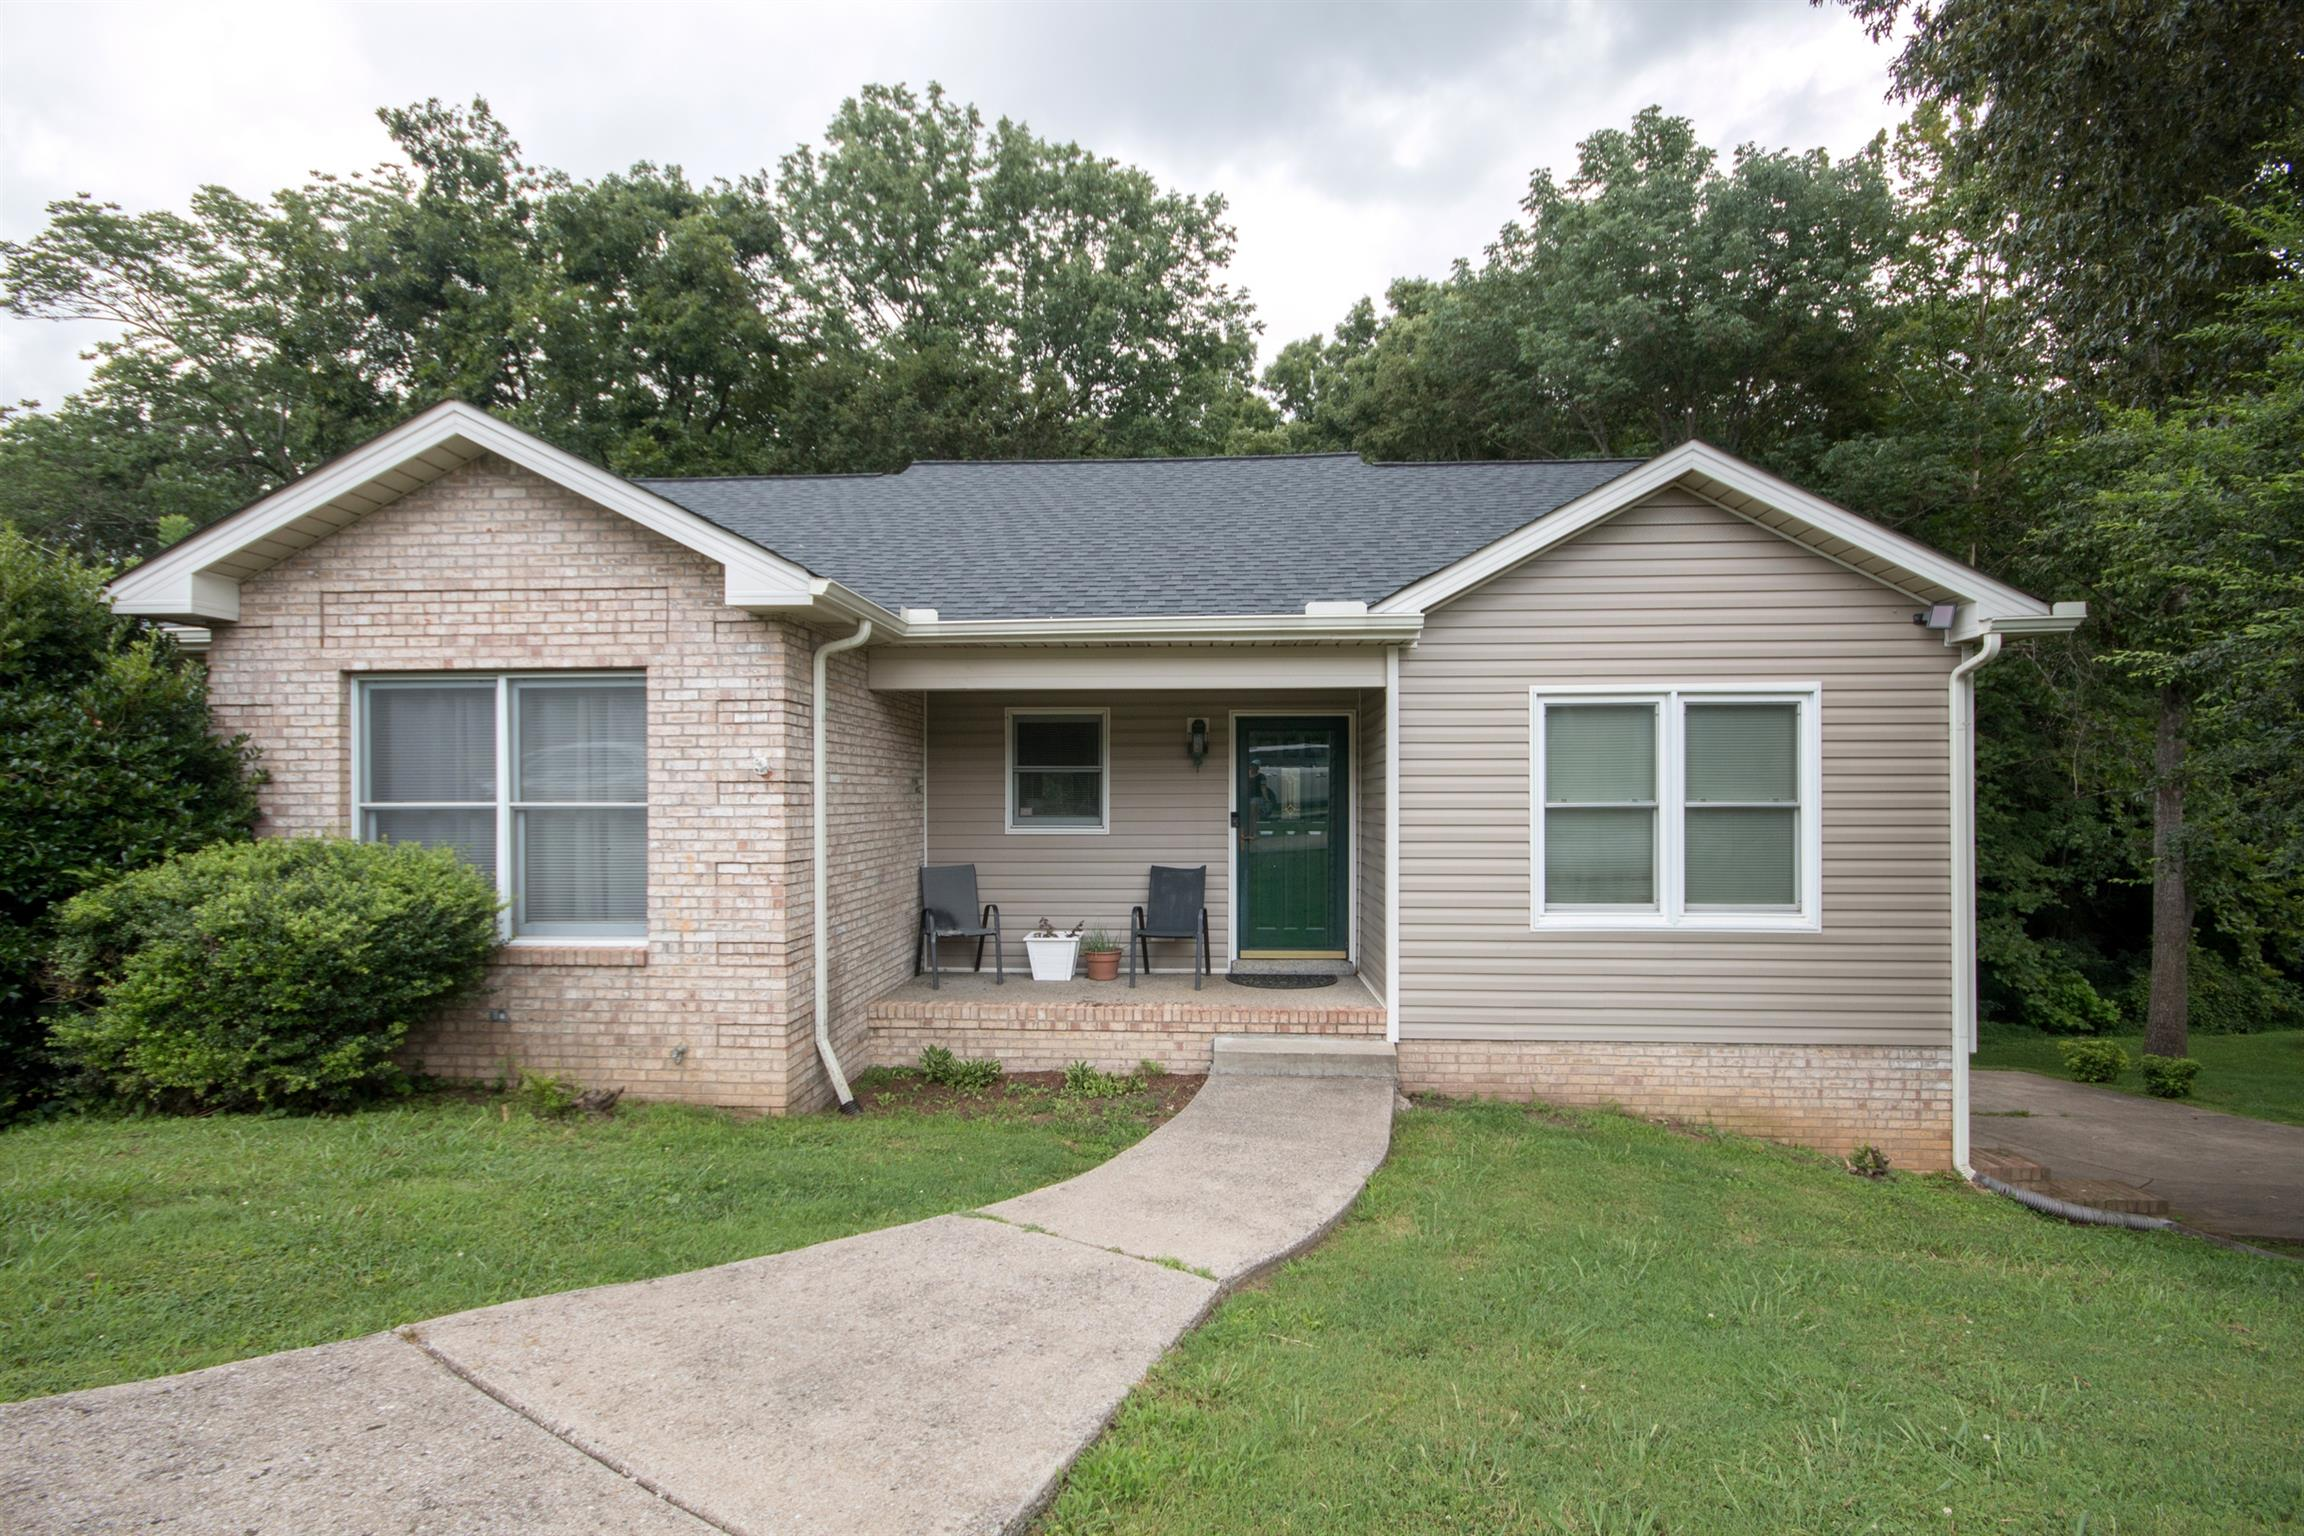 $242,900 - 4Br/3Ba -  for Sale in Stonehenge Subd, Greenbrier